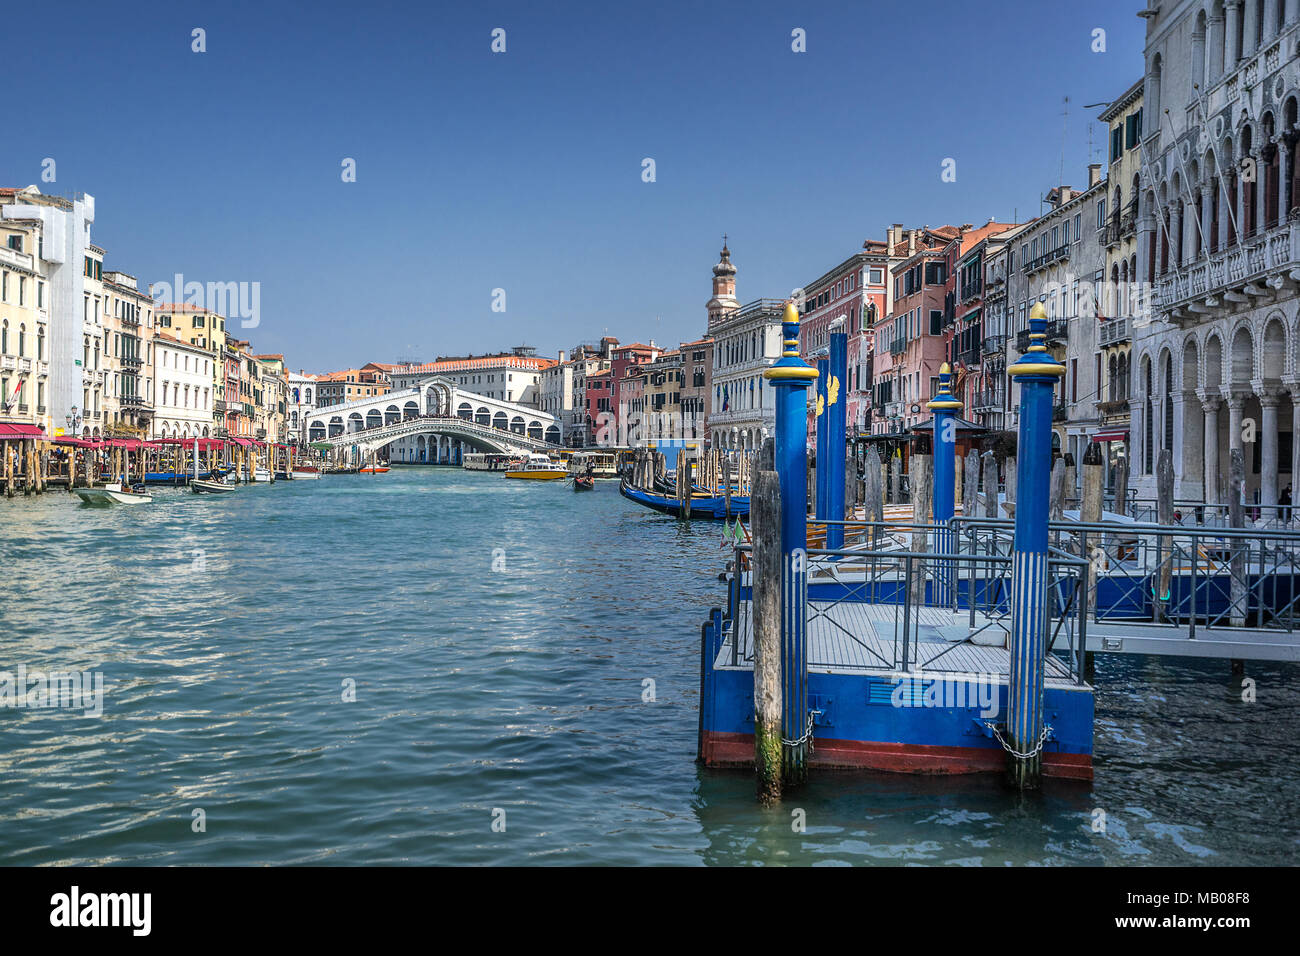 Rialto on the Grand Canal in Venice - Stock Image